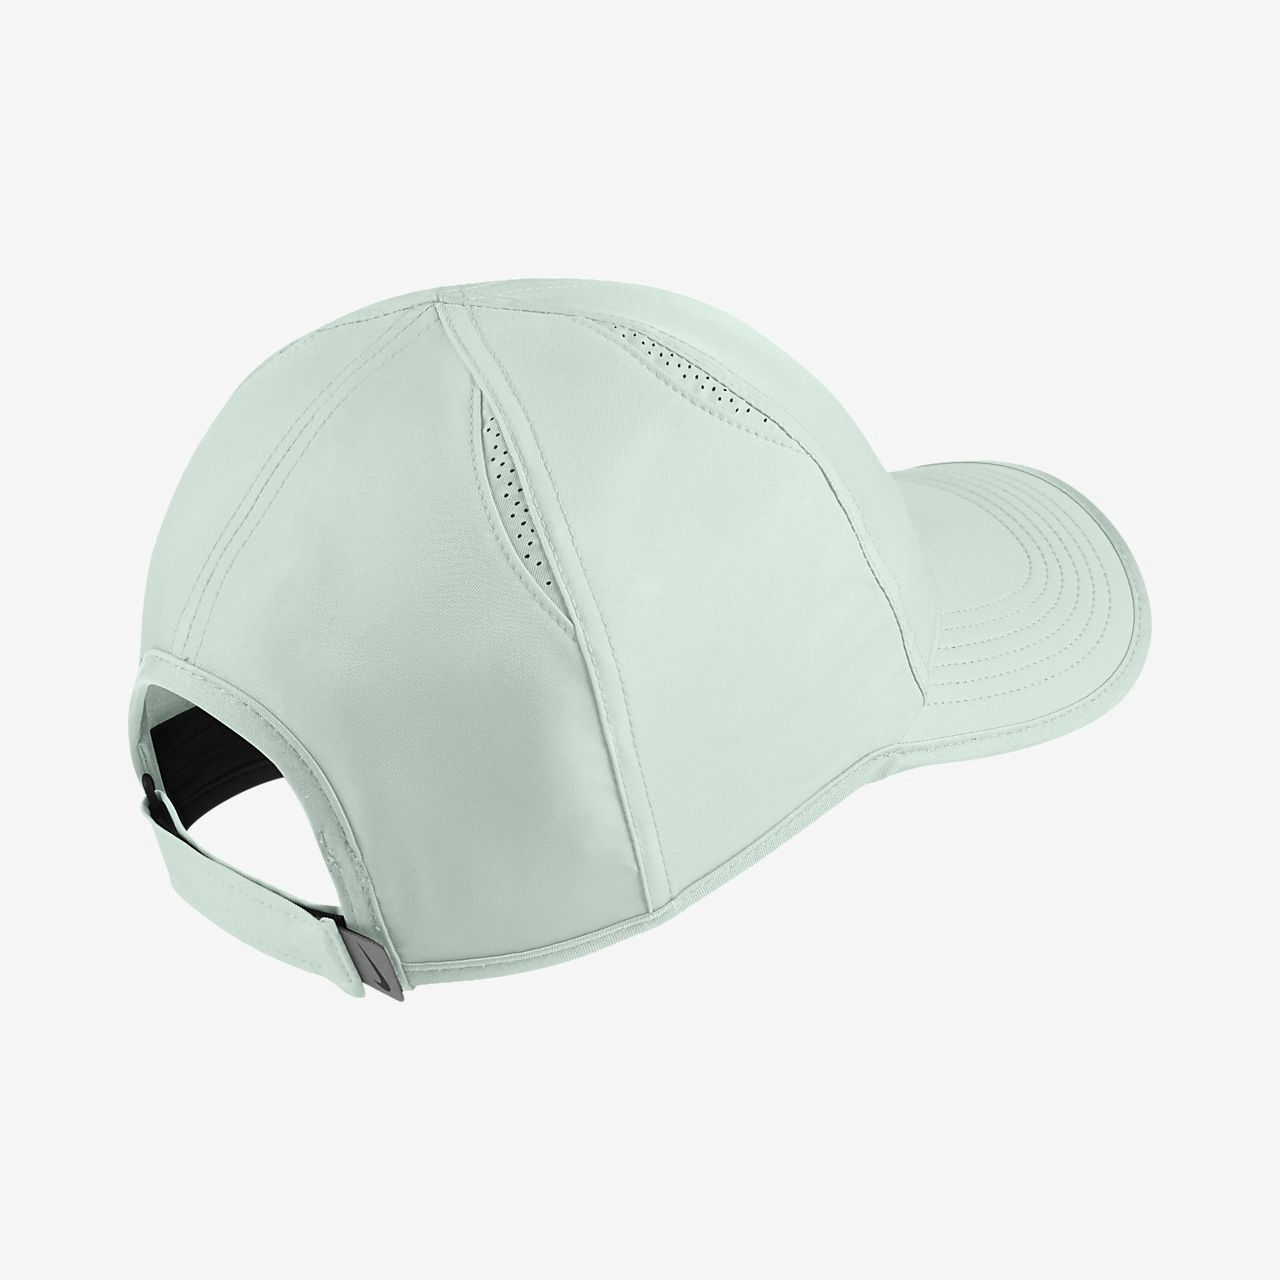 Nike Court Aerobill Featherlight Adjustable Tennis Hat - One Size Barely  Grey Clay Green Clay Green 43633eb19053